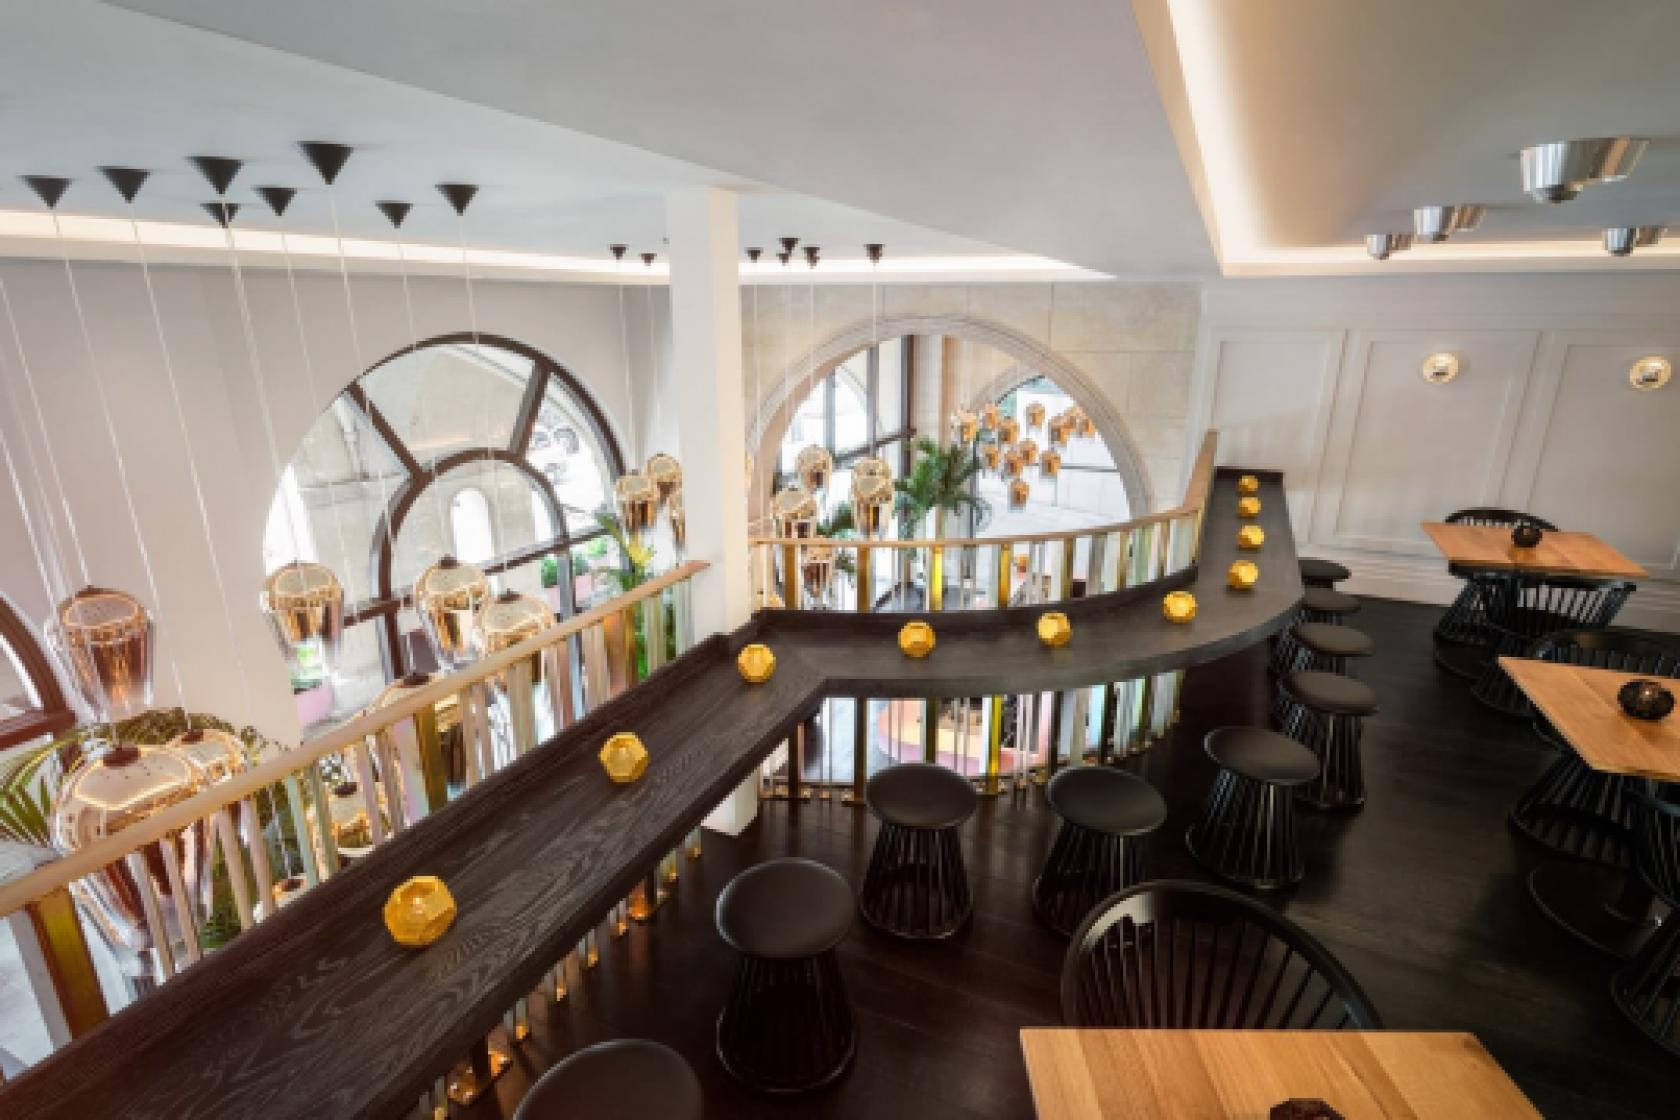 Meet The Restaurant to Eat in London with Best Lighting Designs 1 lighting design Meet The Restaurant to Eat in London with Best Lighting Designs Meet The Restaurant to Eat in London with Best Lighting Designs 7